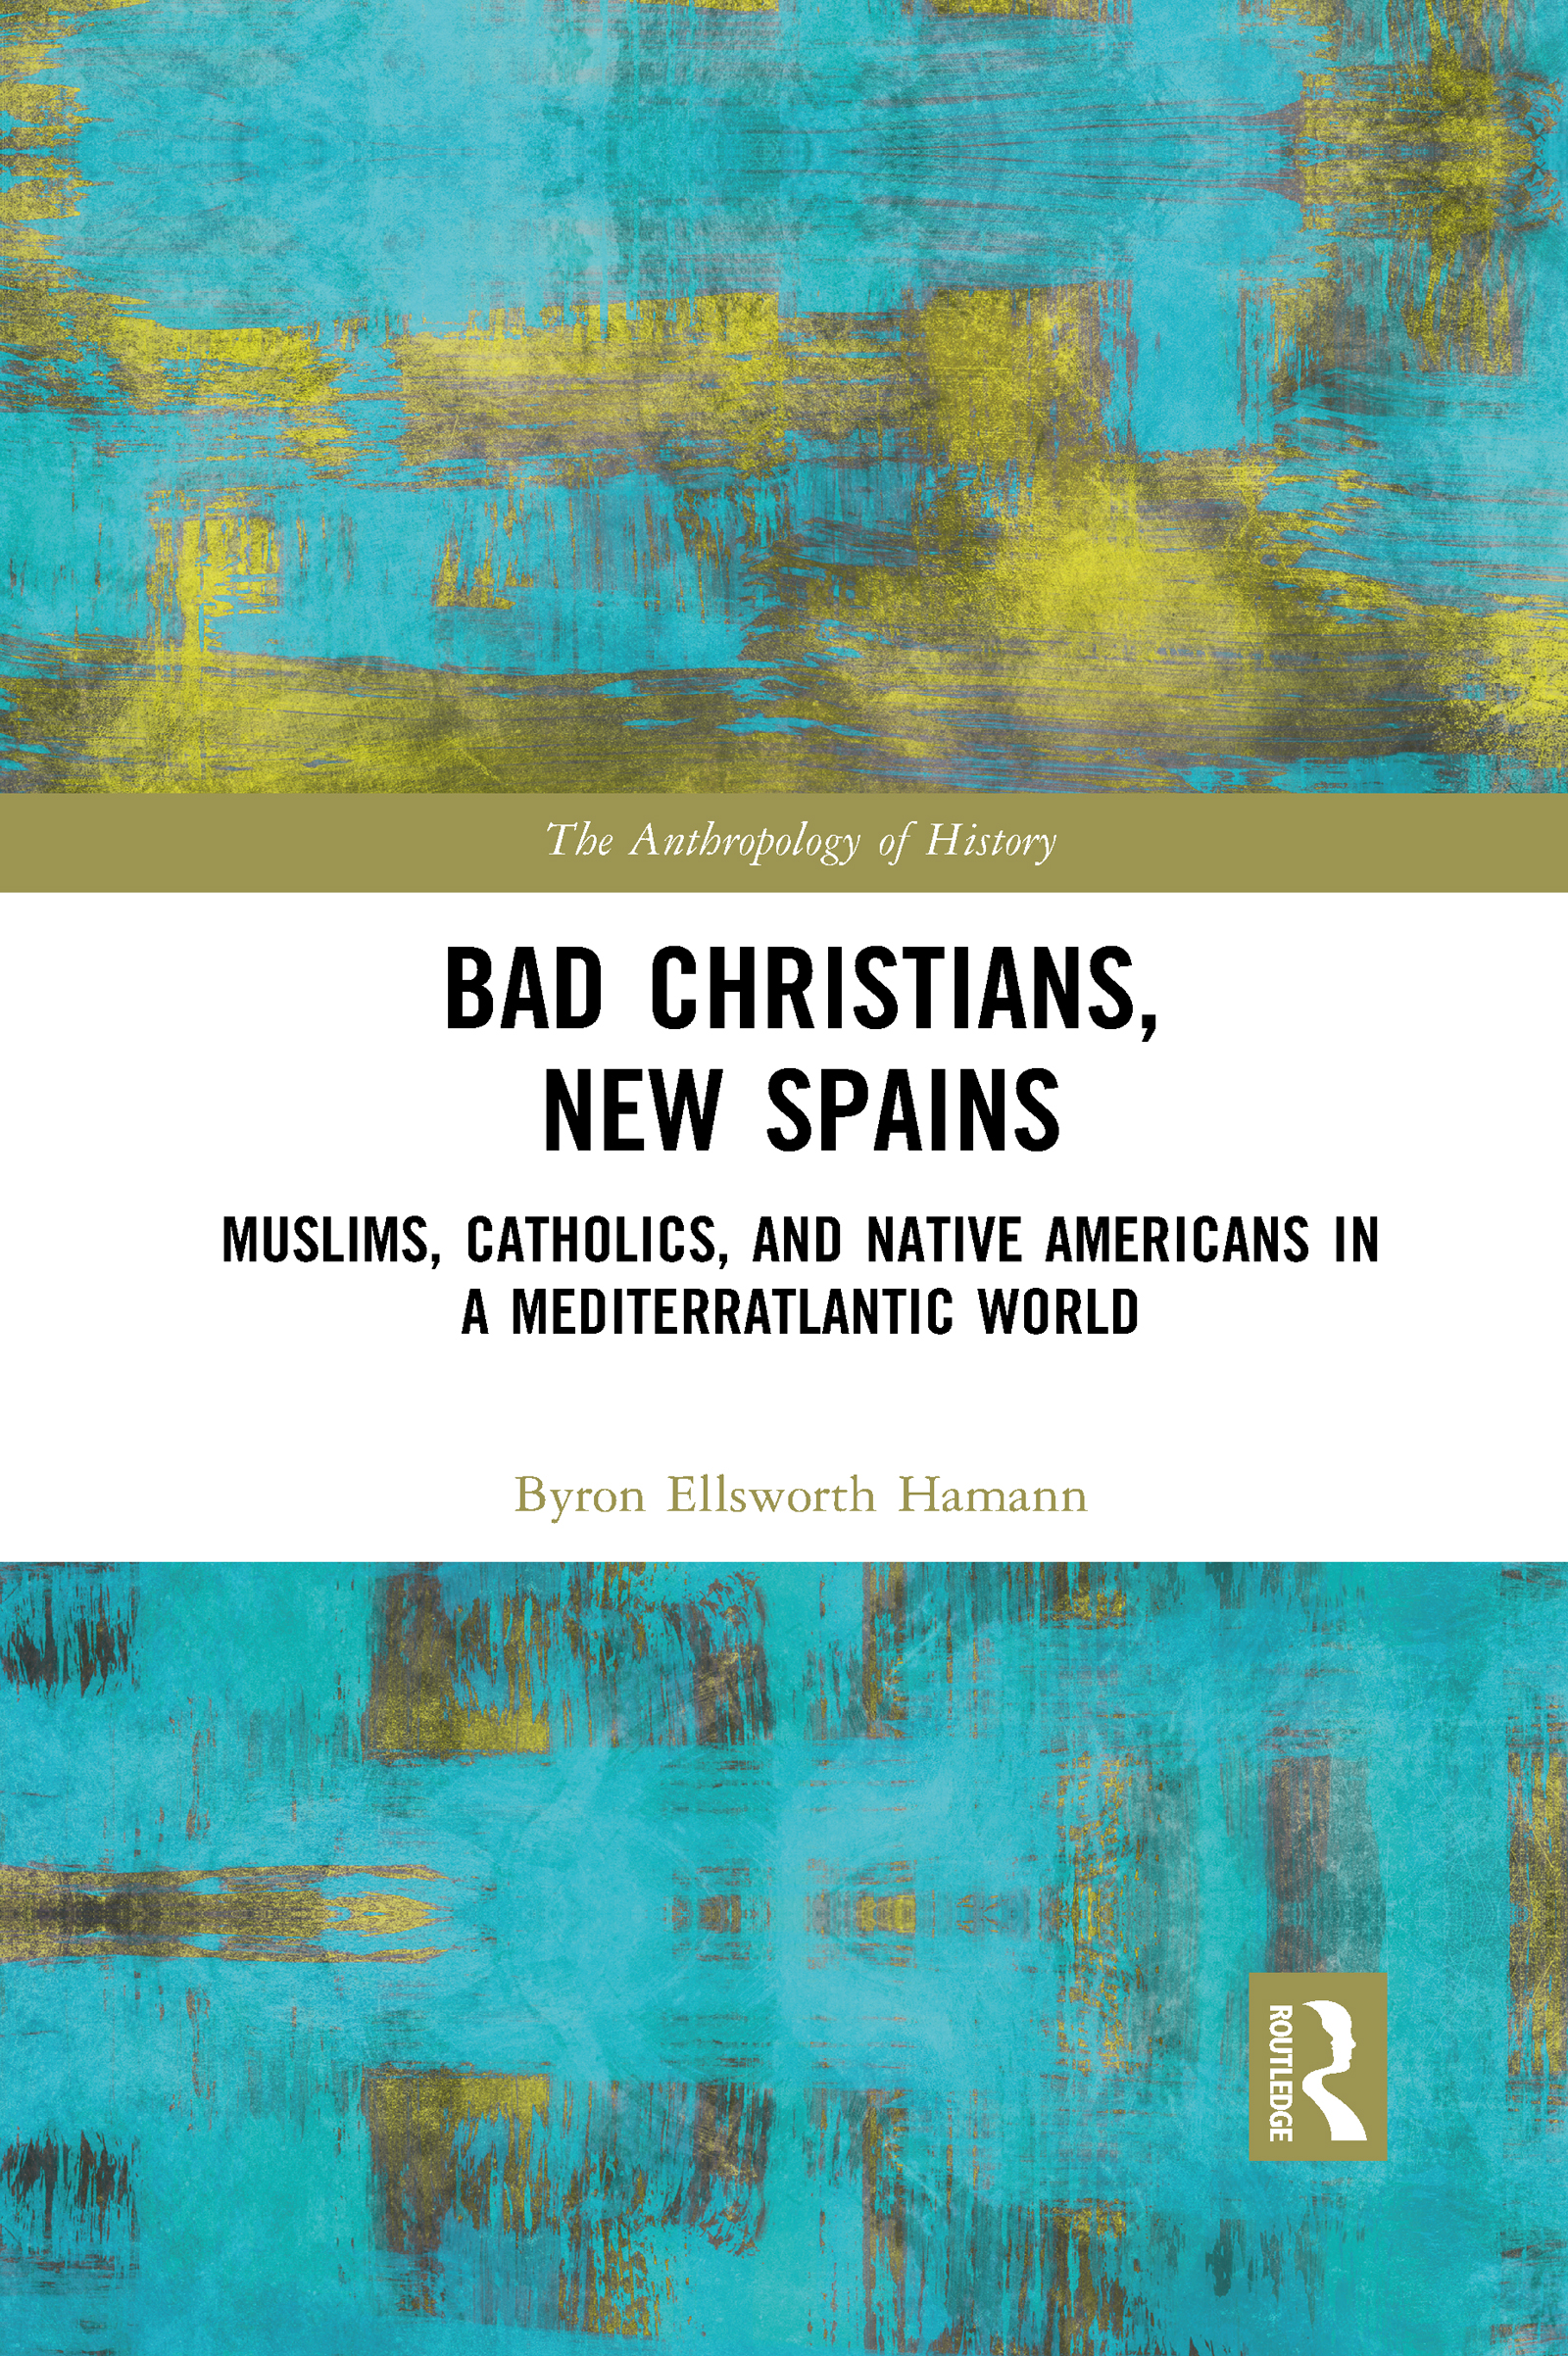 Bad Christians, New Spains